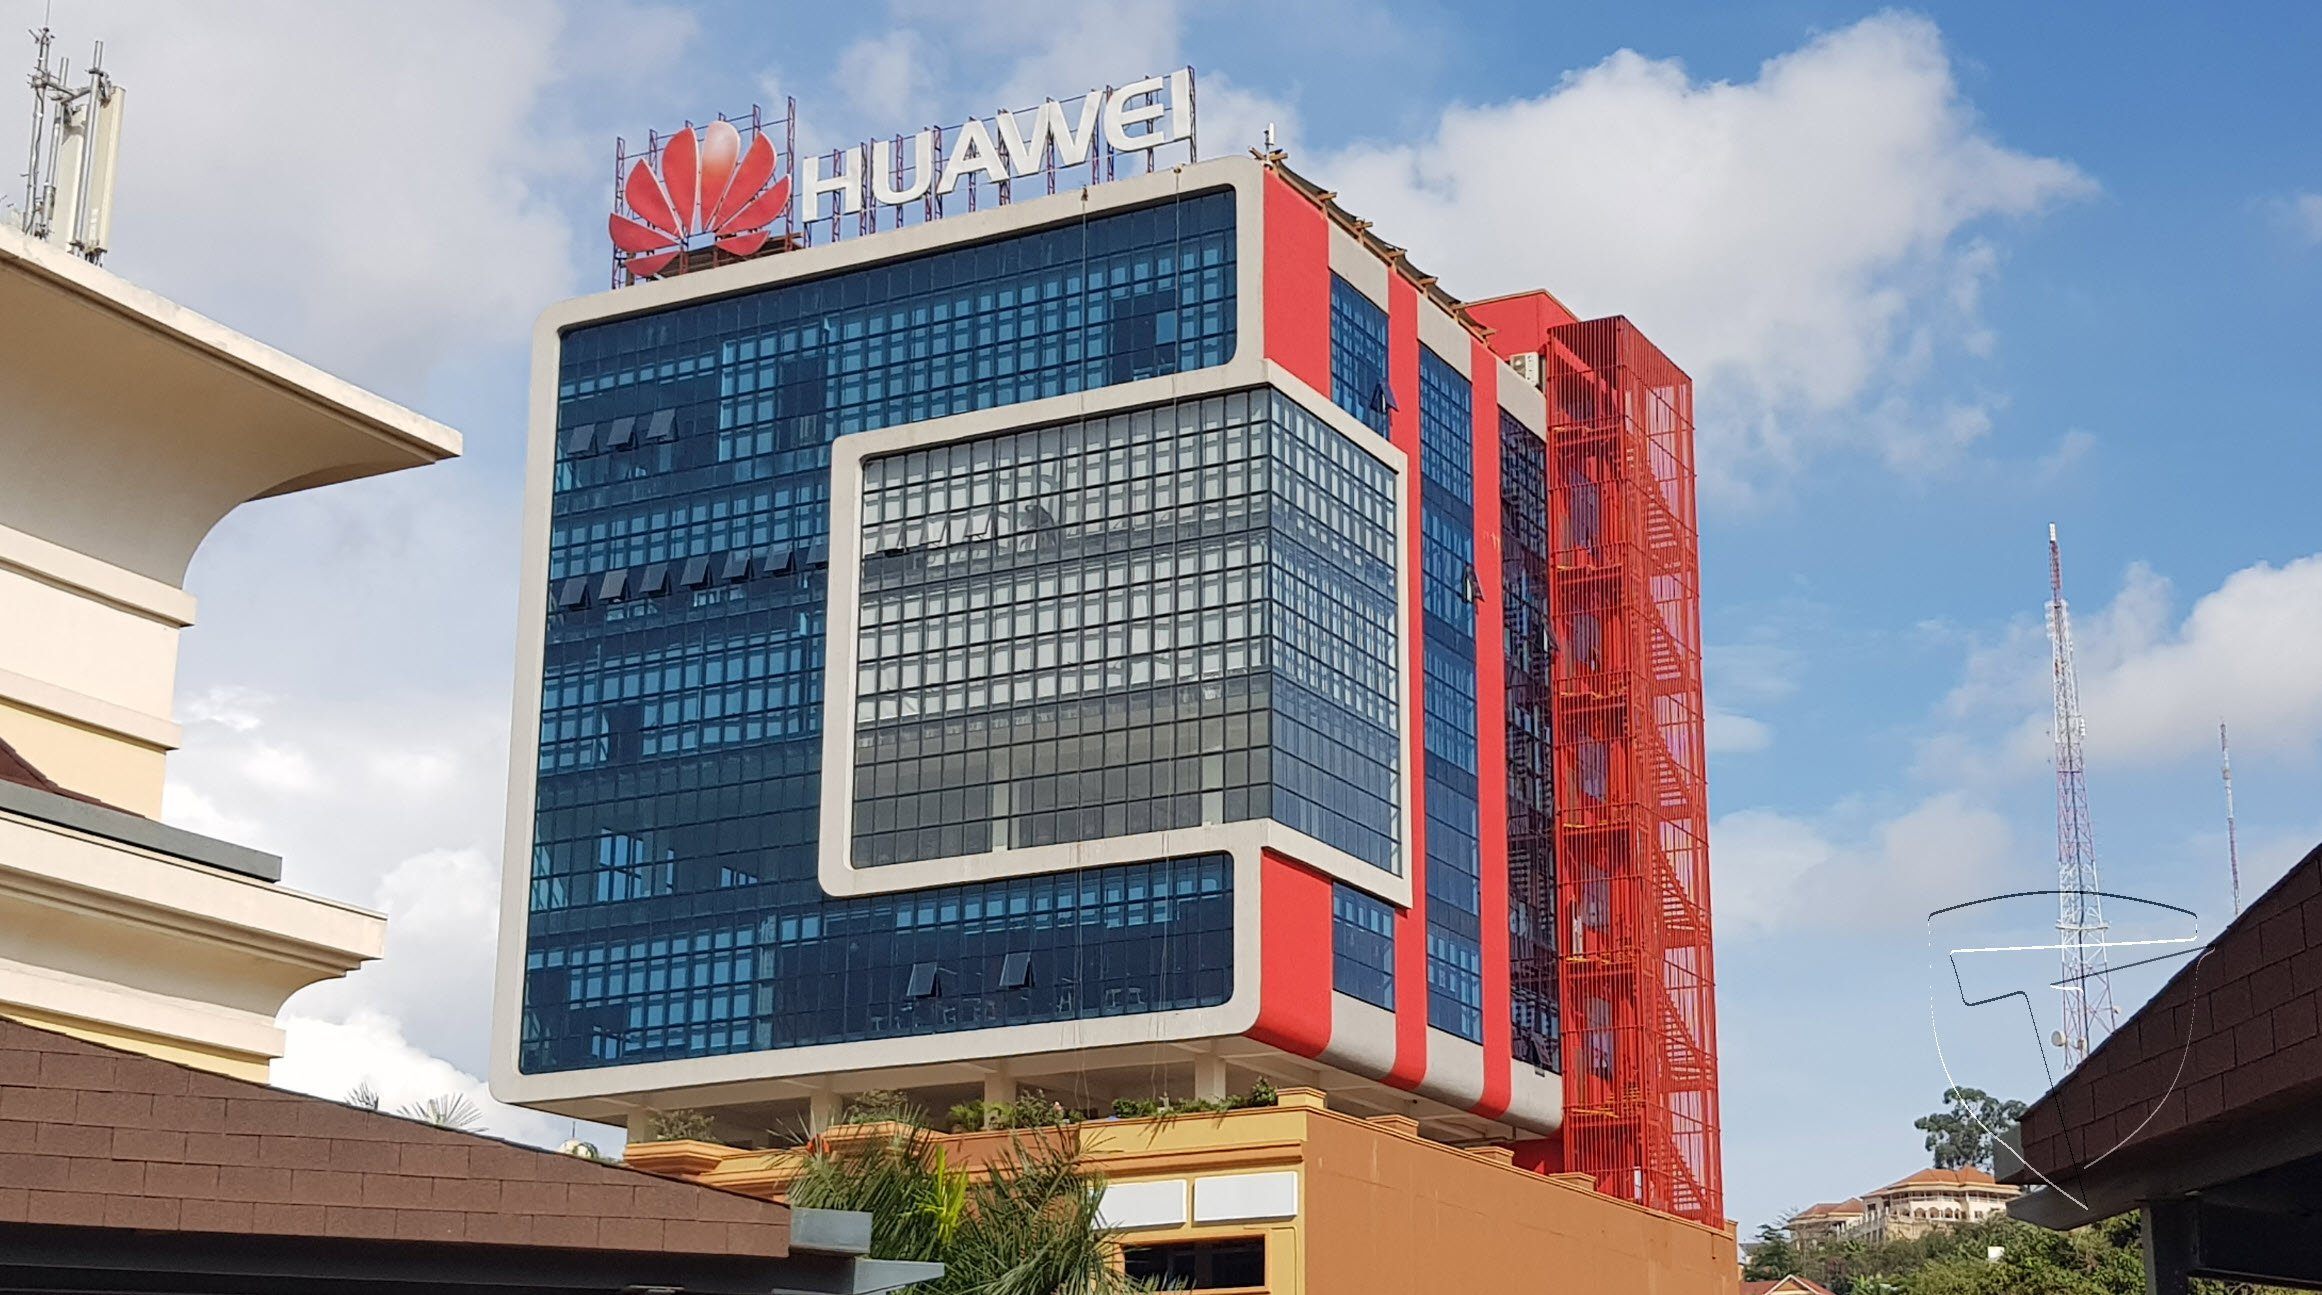 Huawei employees caught intercepting messages to spy for two governments in Africa